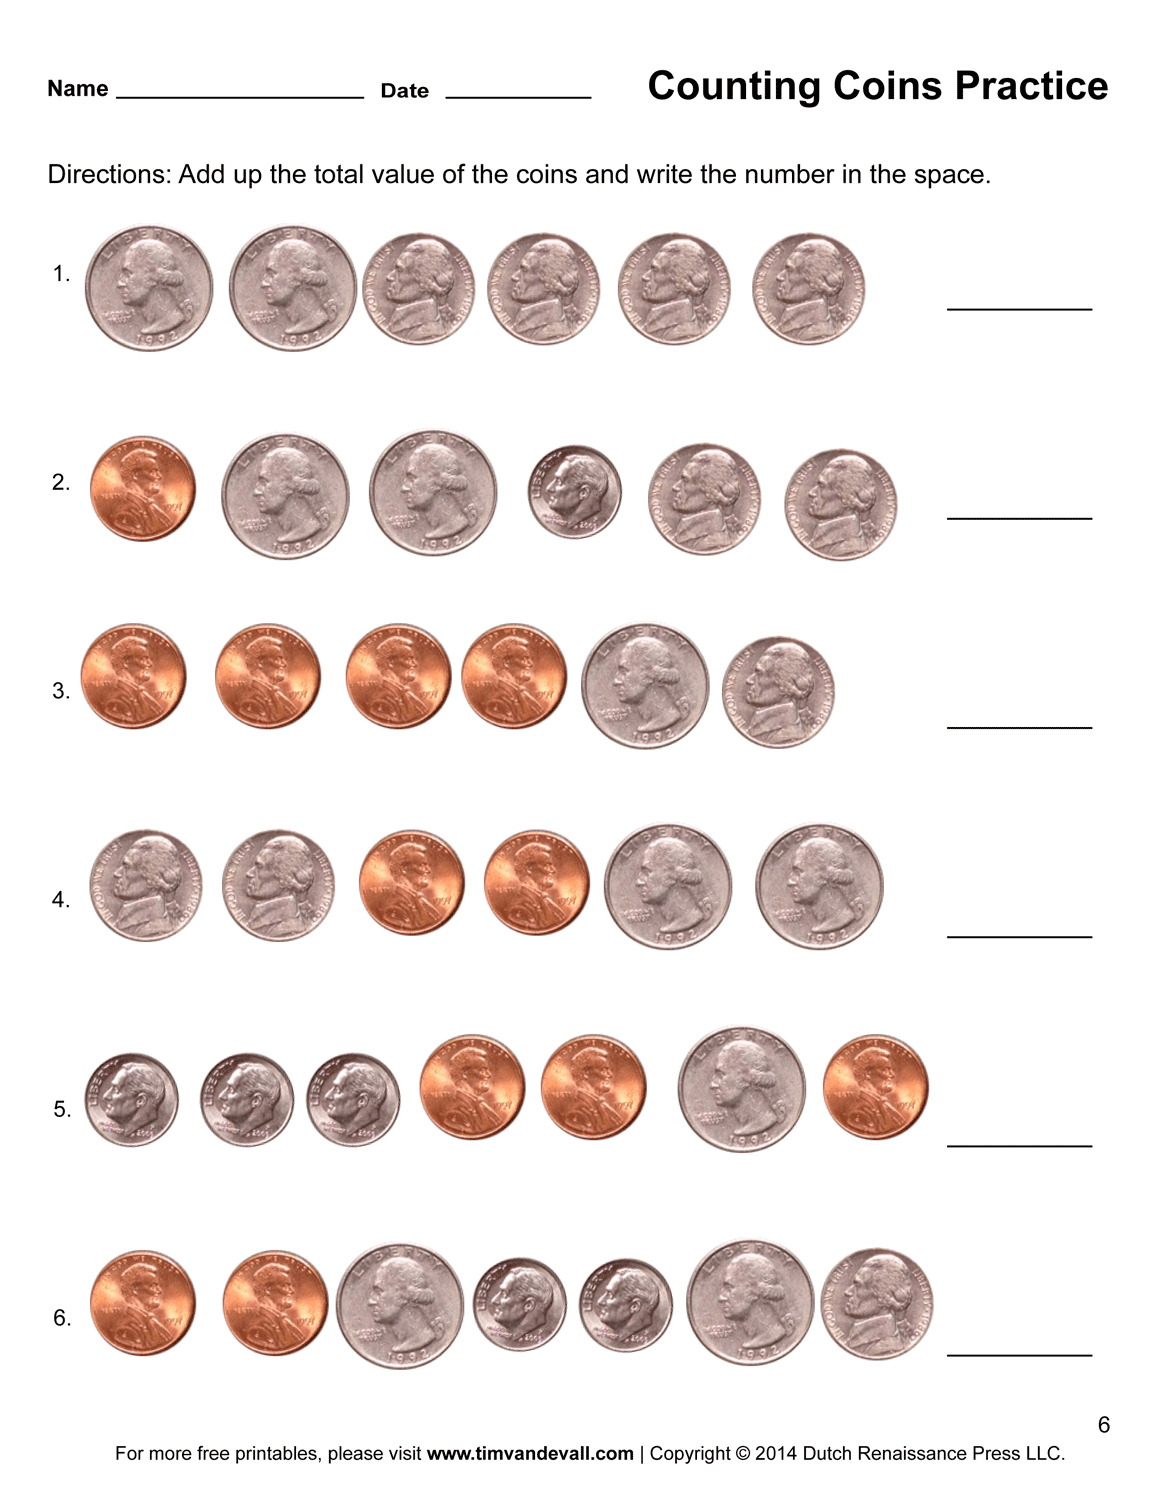 Counting Money Worksheets 1St Grade For Free Download - Math - Free Printable Money Worksheets For 1St Grade